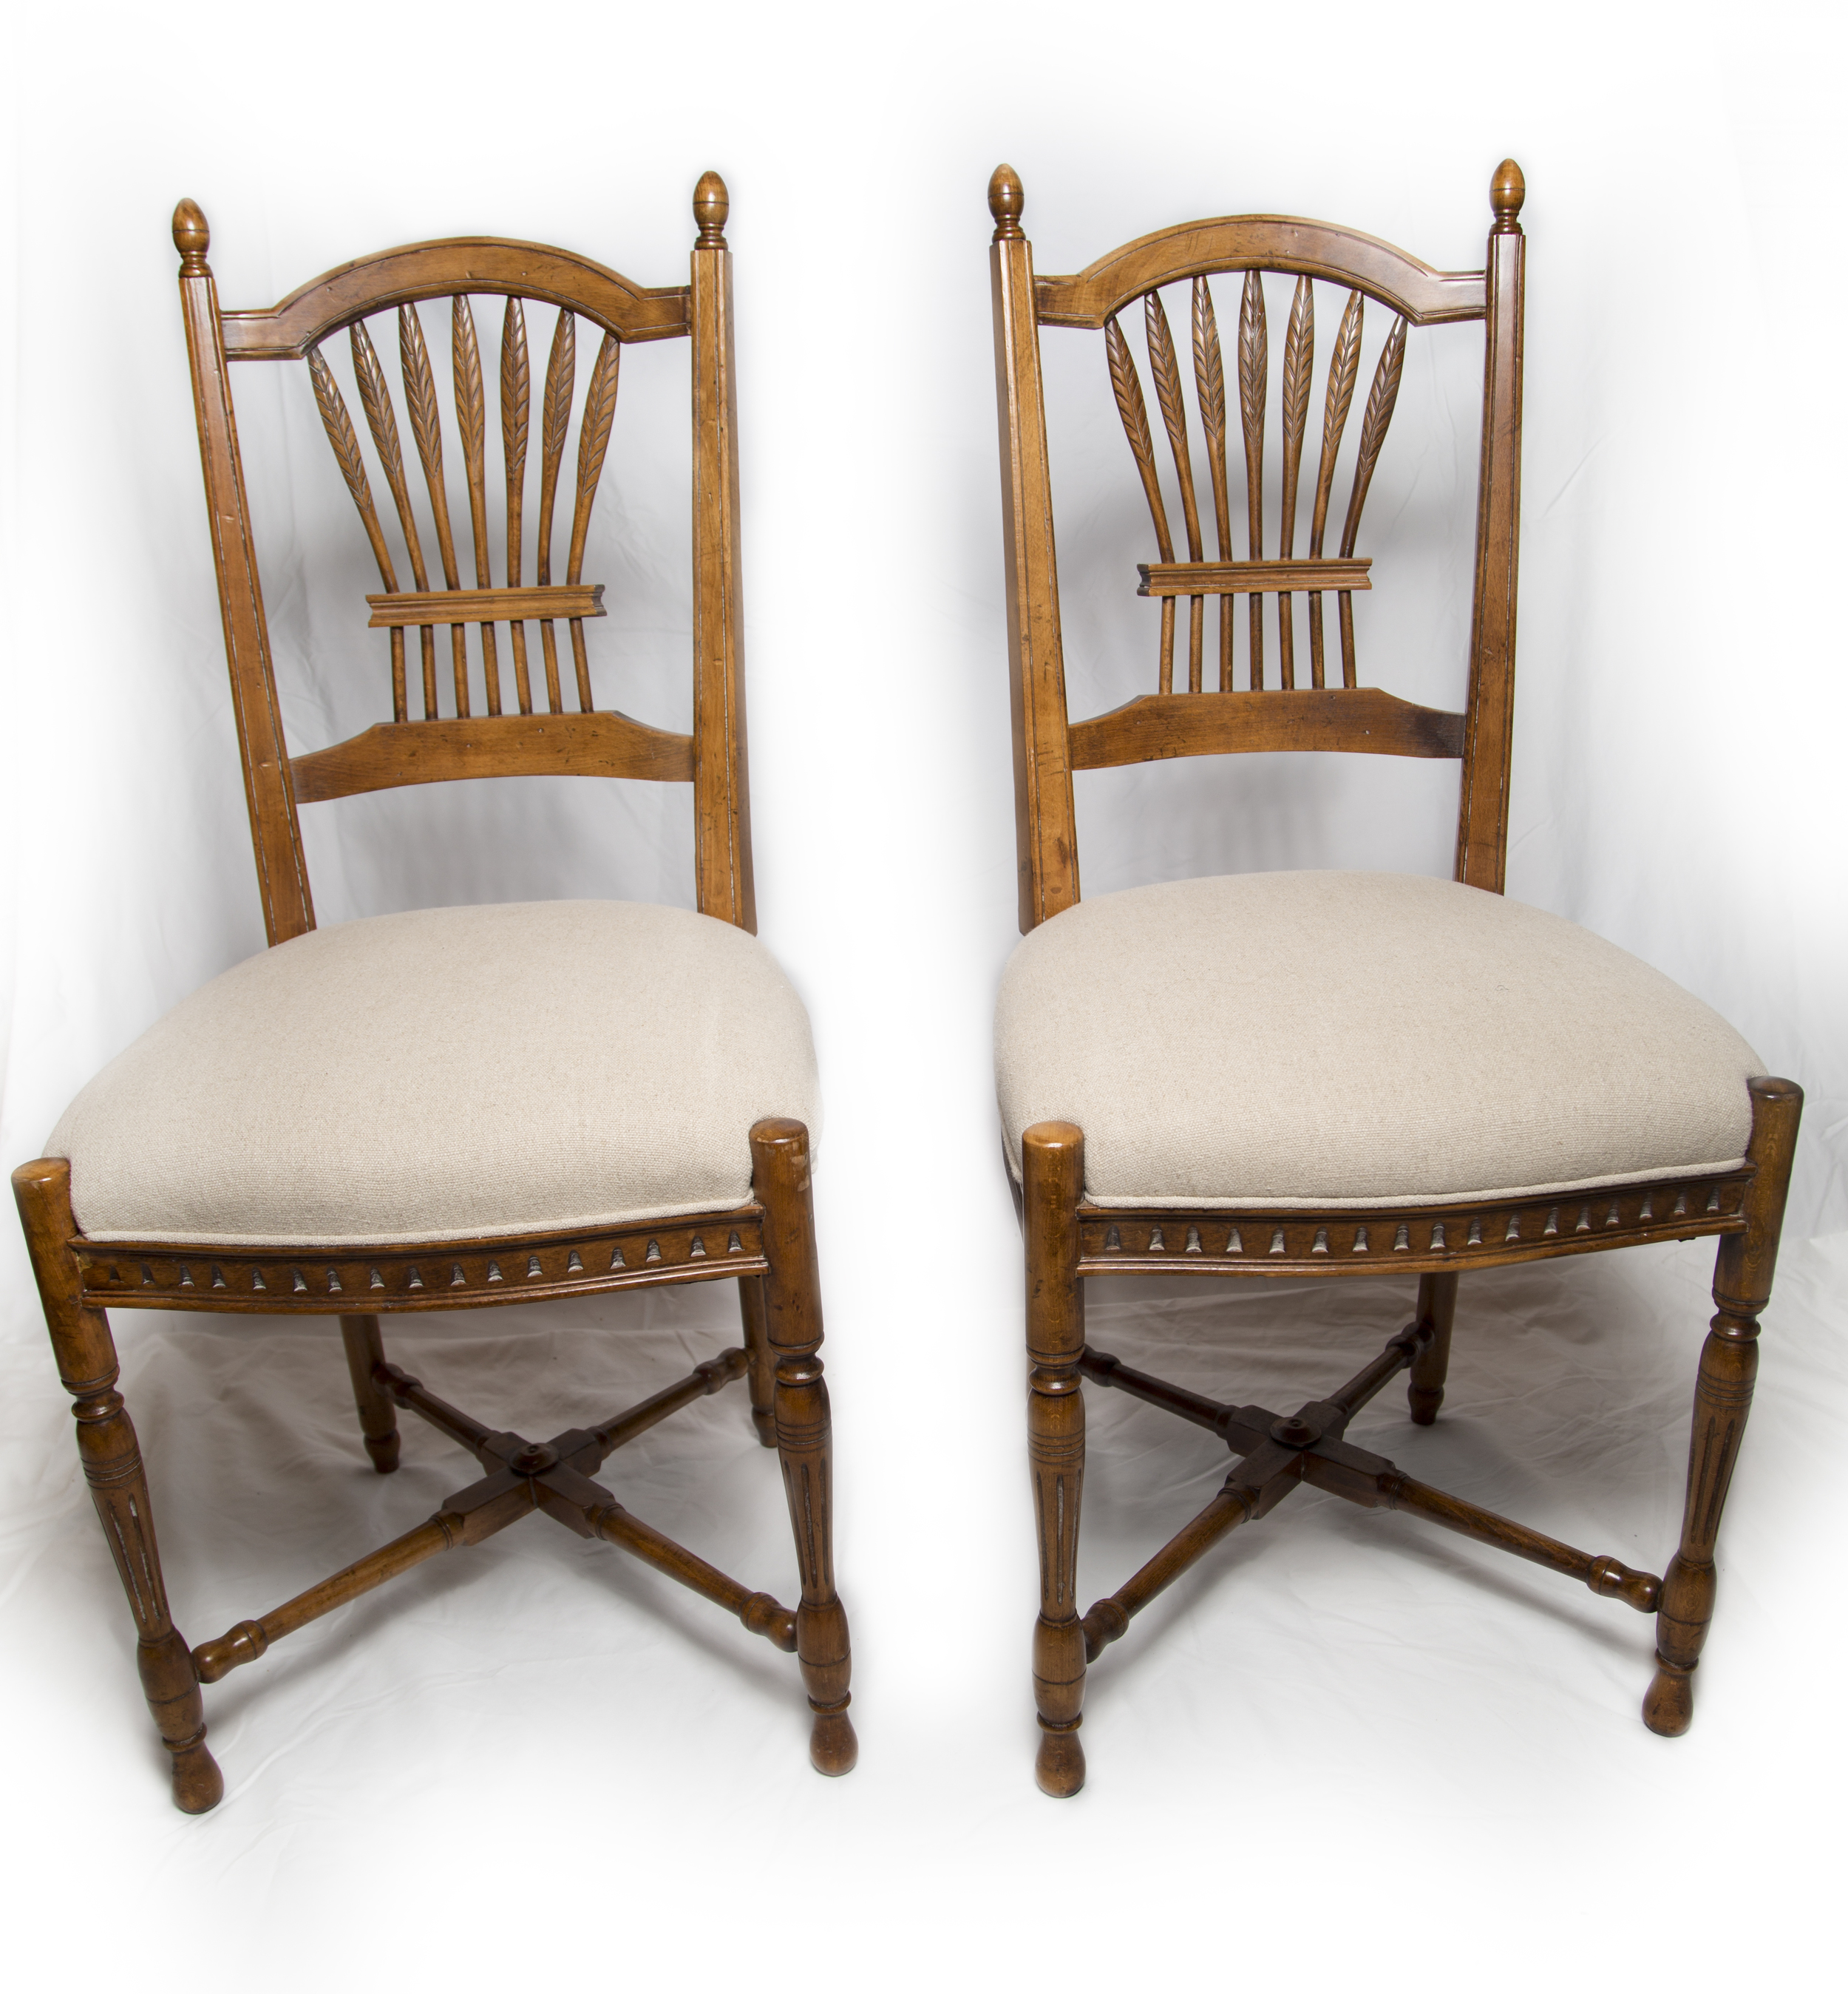 Hickory Chair Wheat Back Chairs recovered in Belgian Linen.